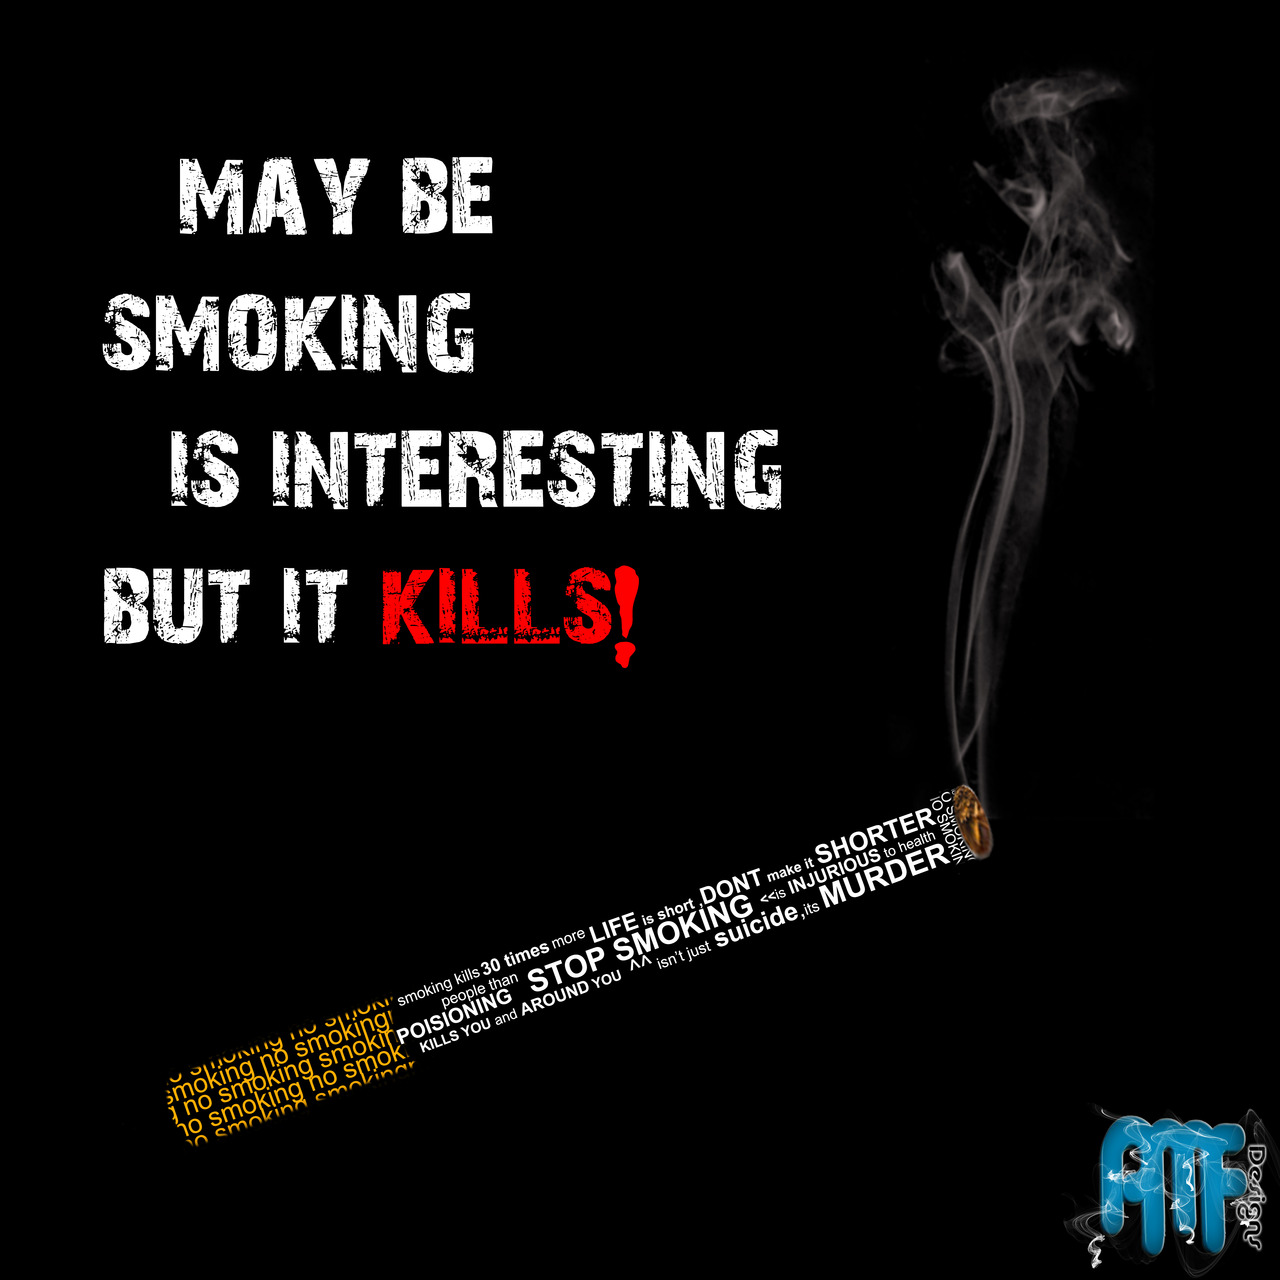 No smoking by amfdesigns on deviantart - No smoking wallpaper download ...